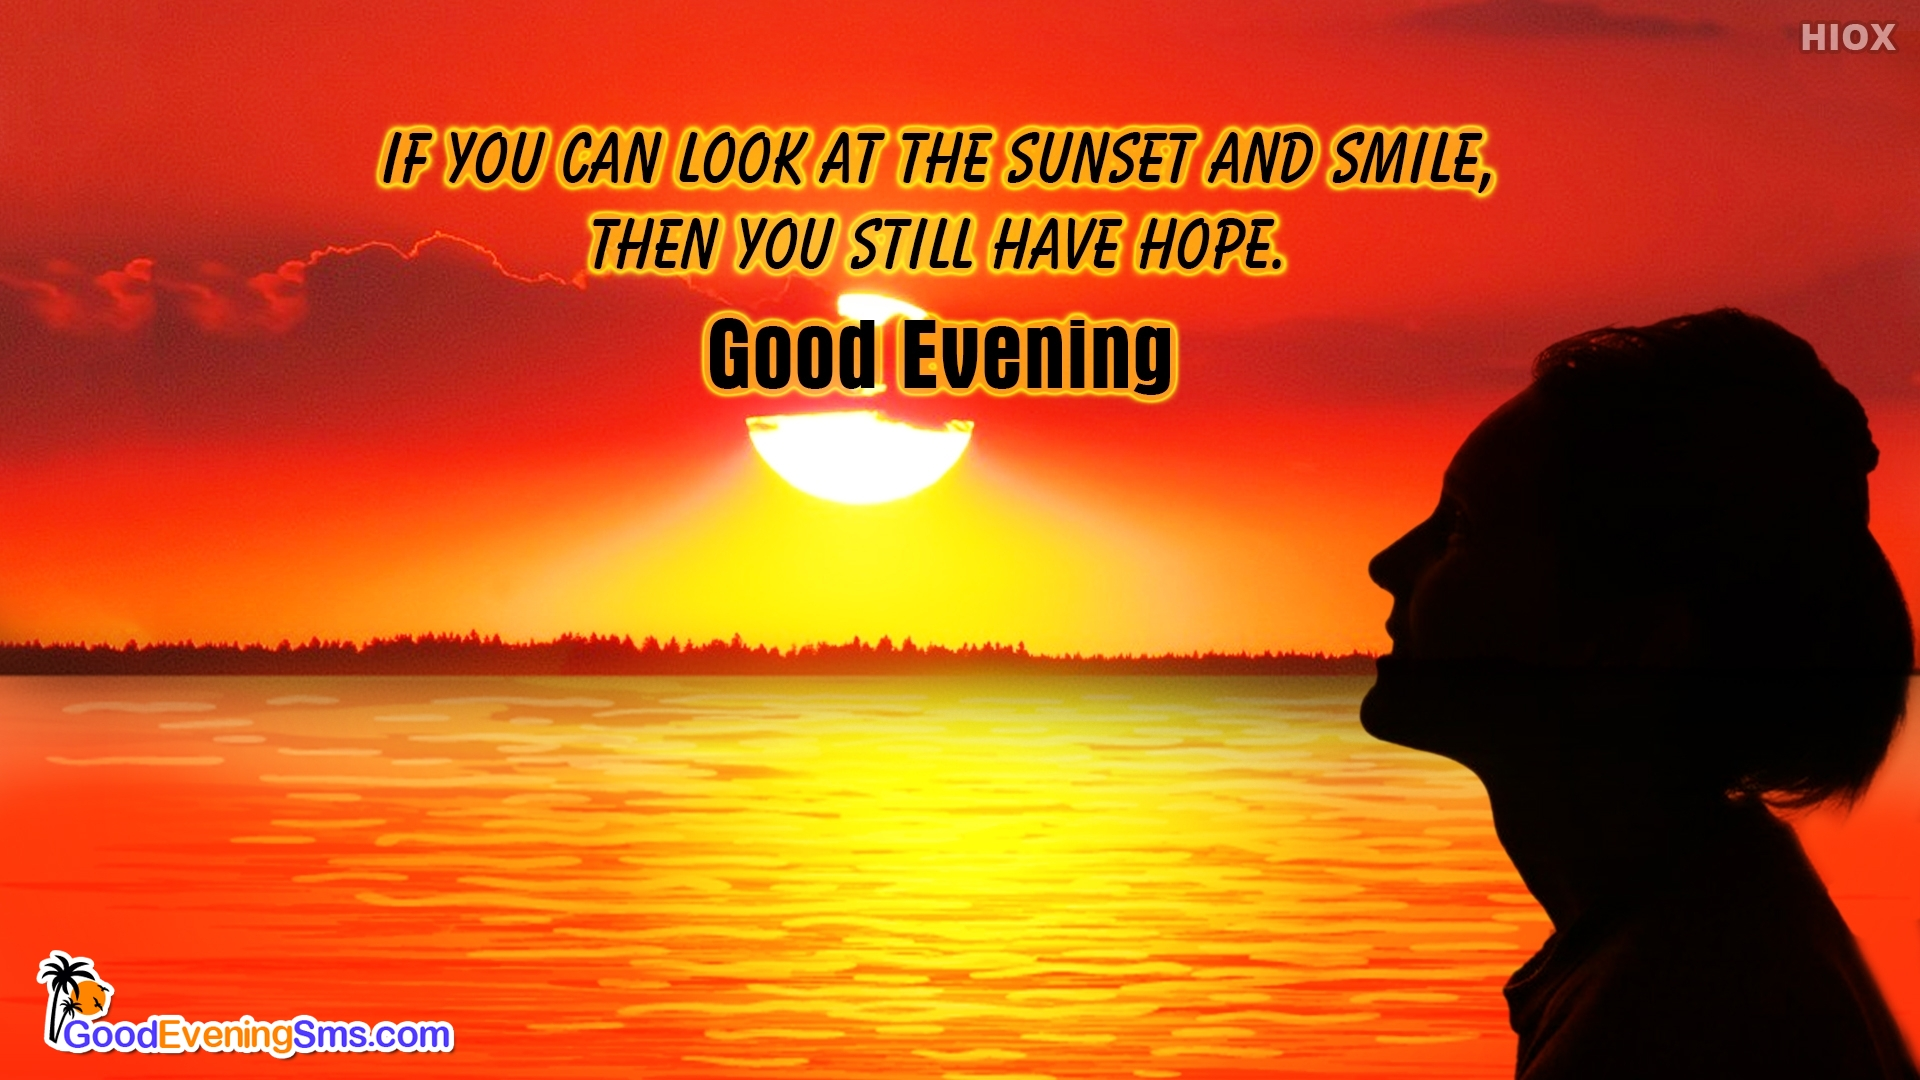 Good Evening Wishes for Hope